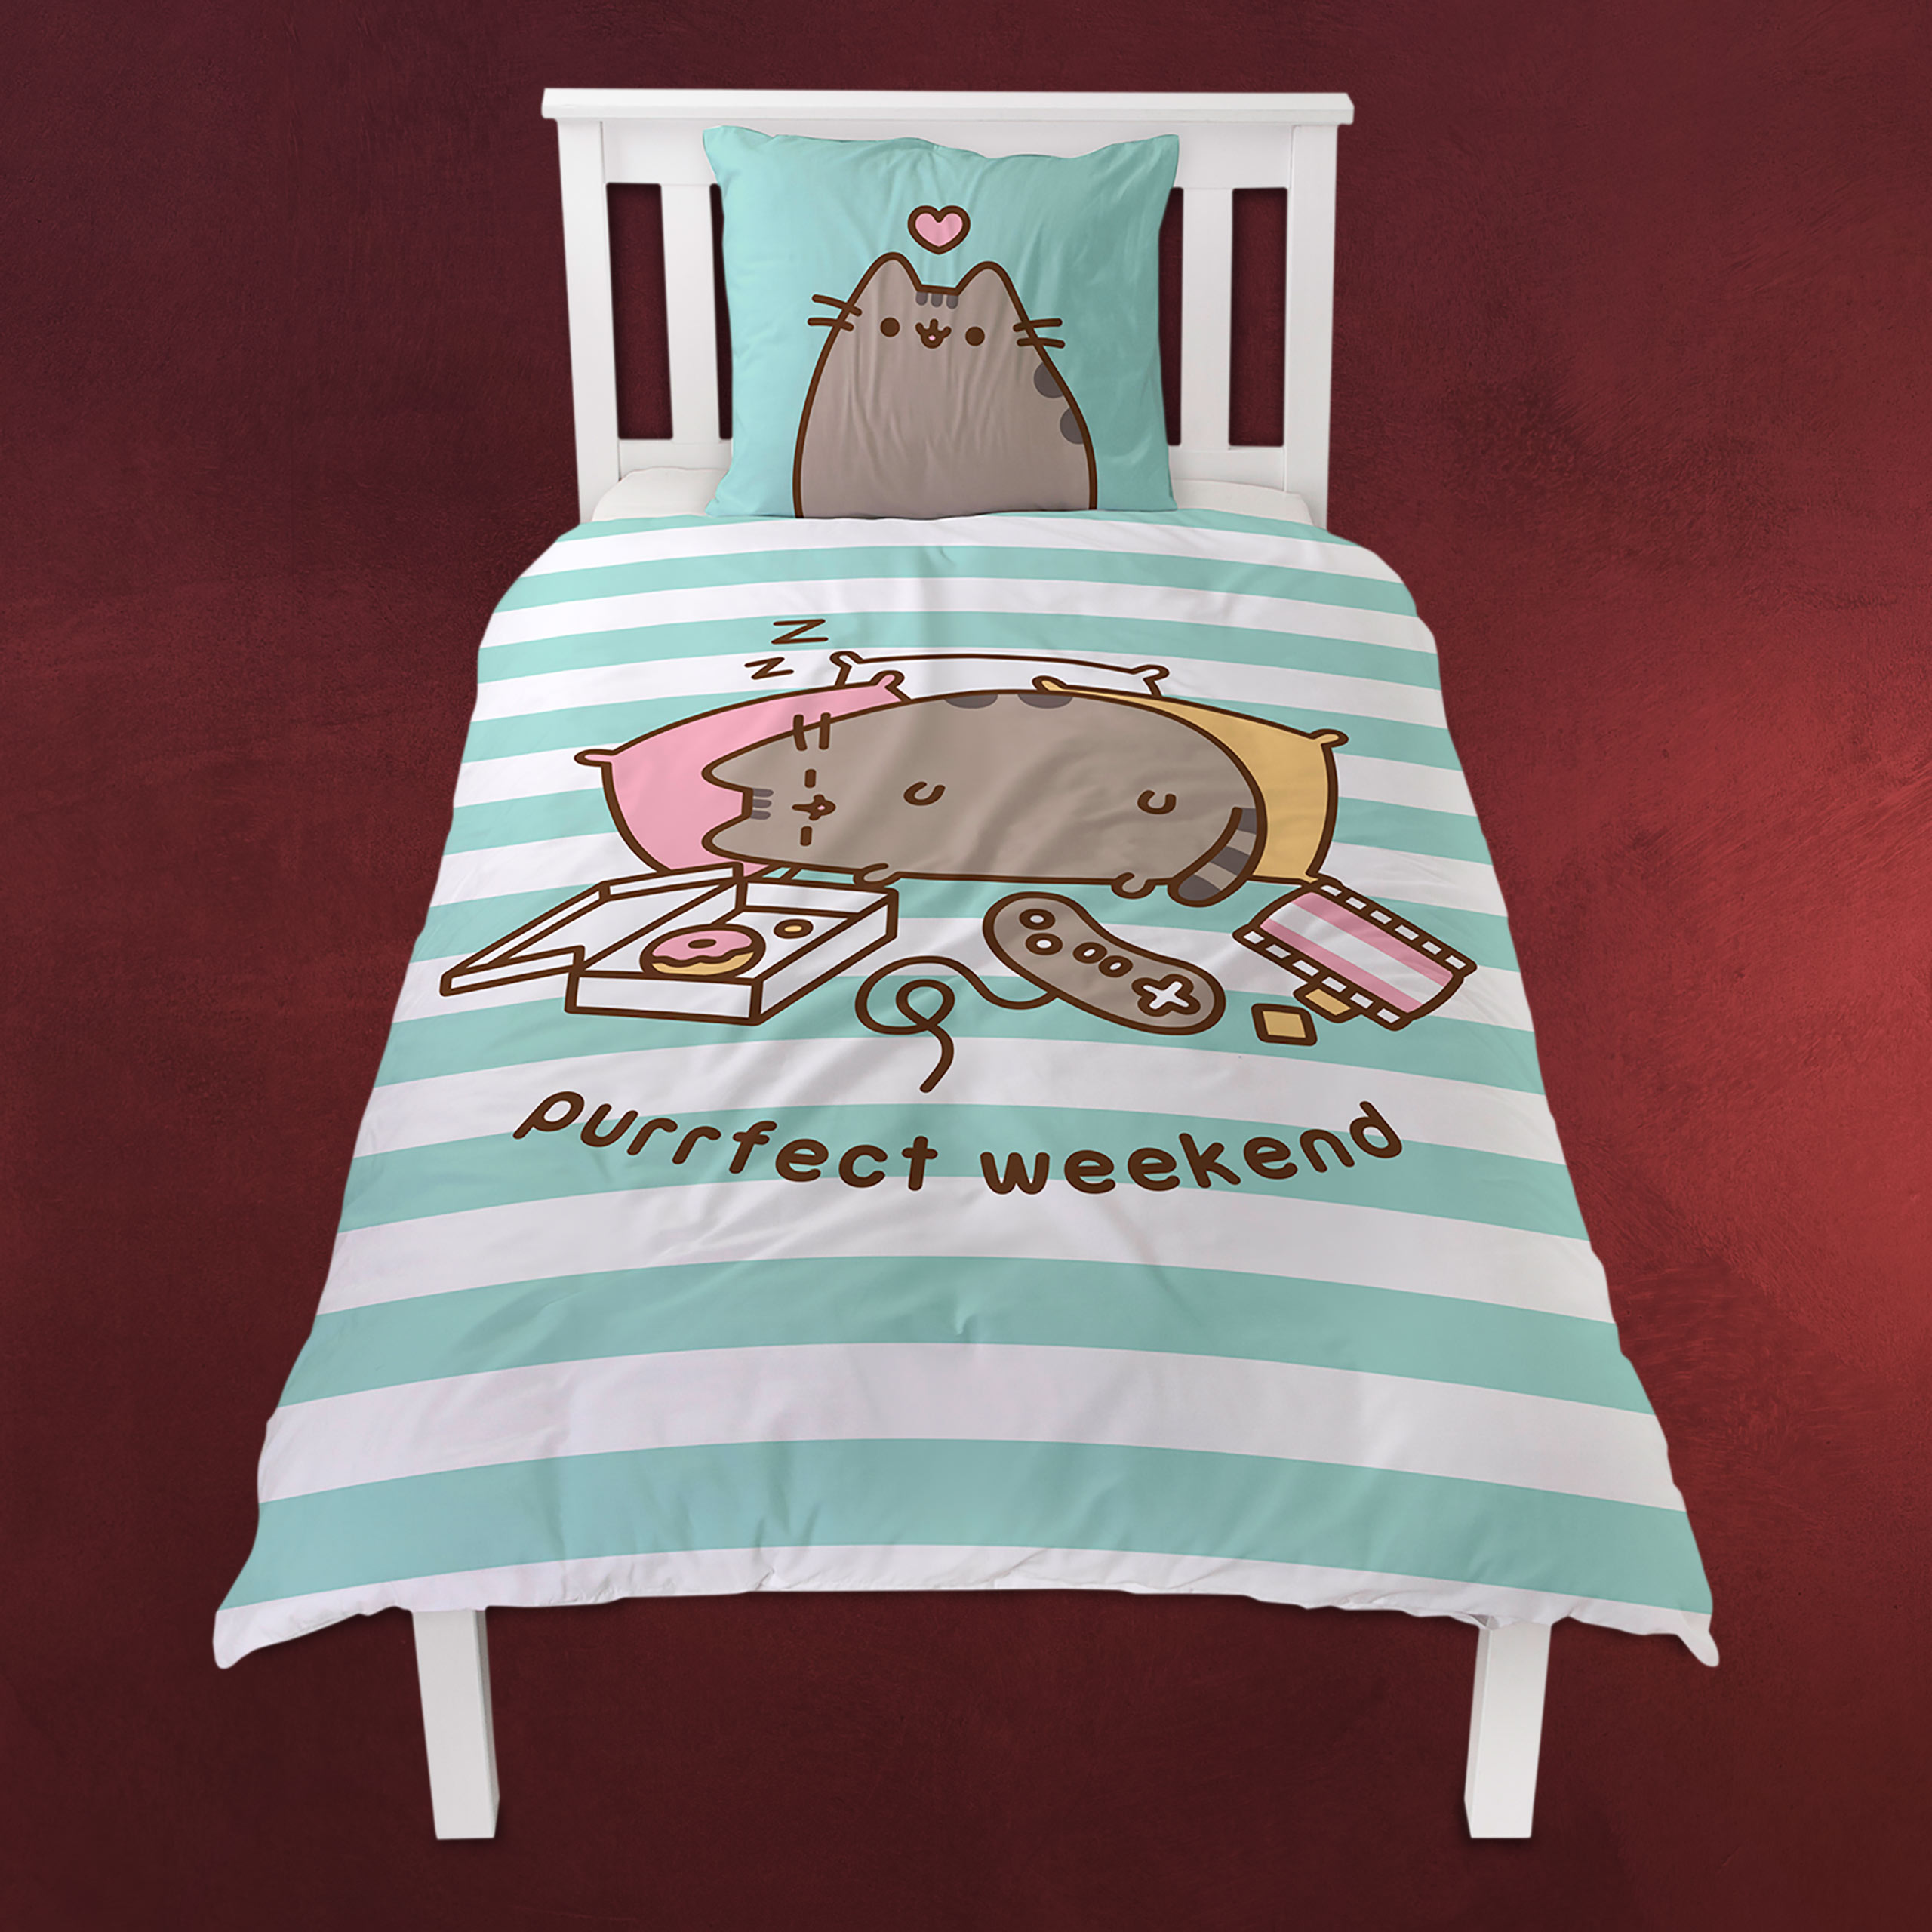 Harry Potter Hogwarts Wappen Bettwäsche Elbenwald Pusheen Purrfect Weekend Wende Bettwäsche